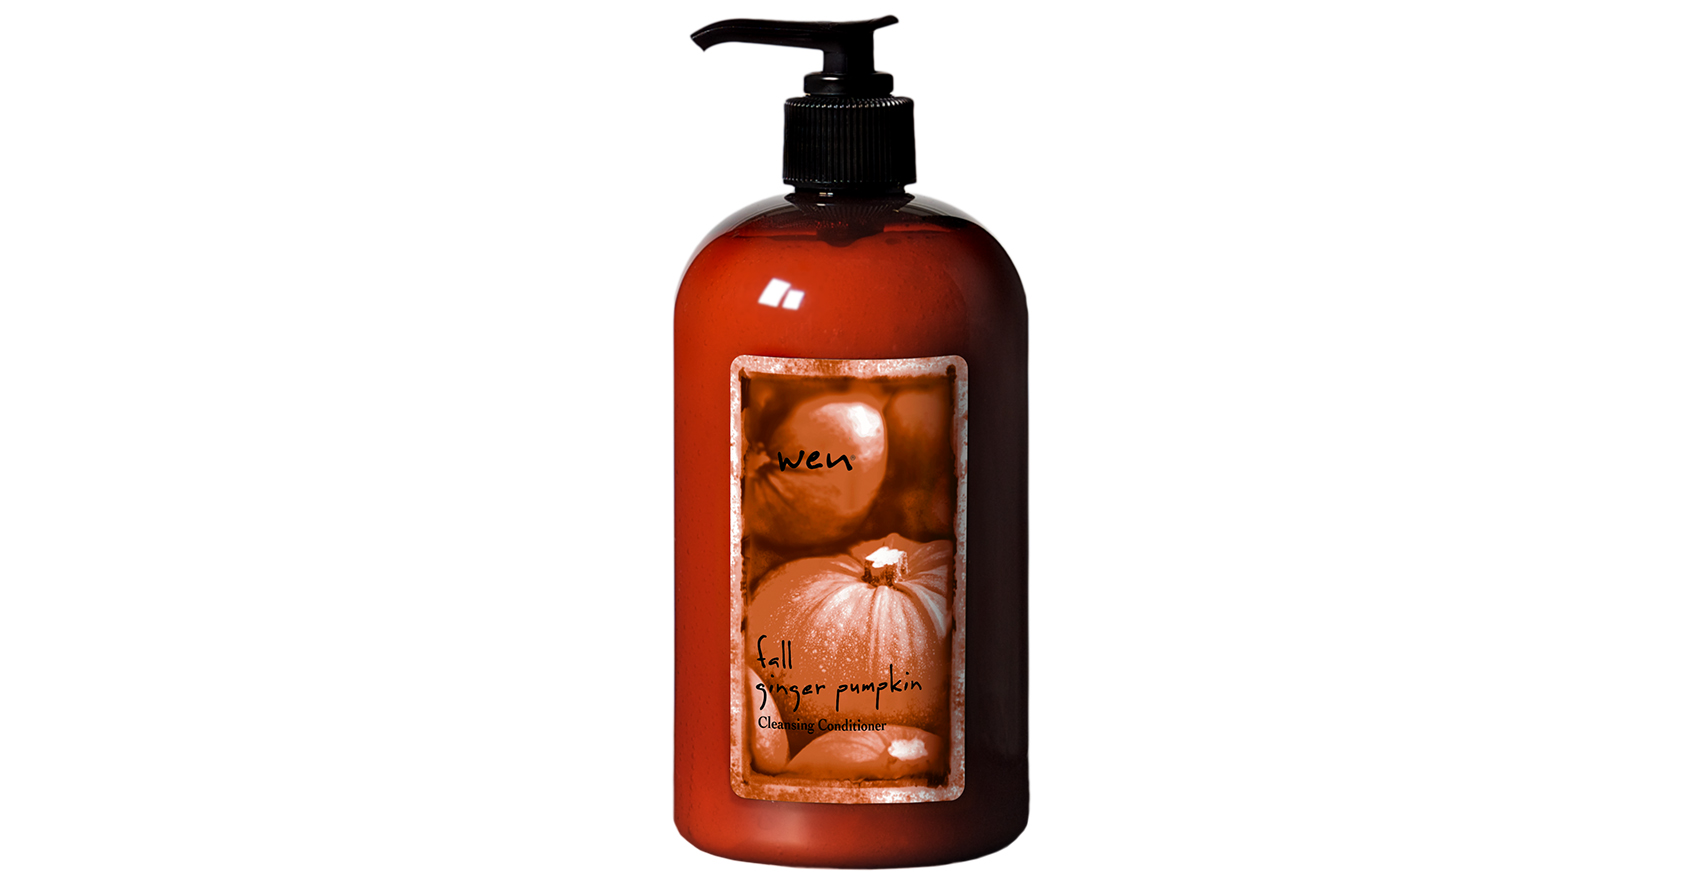 WEN Fall Ginger Pumpkin Cleansing Conditioner